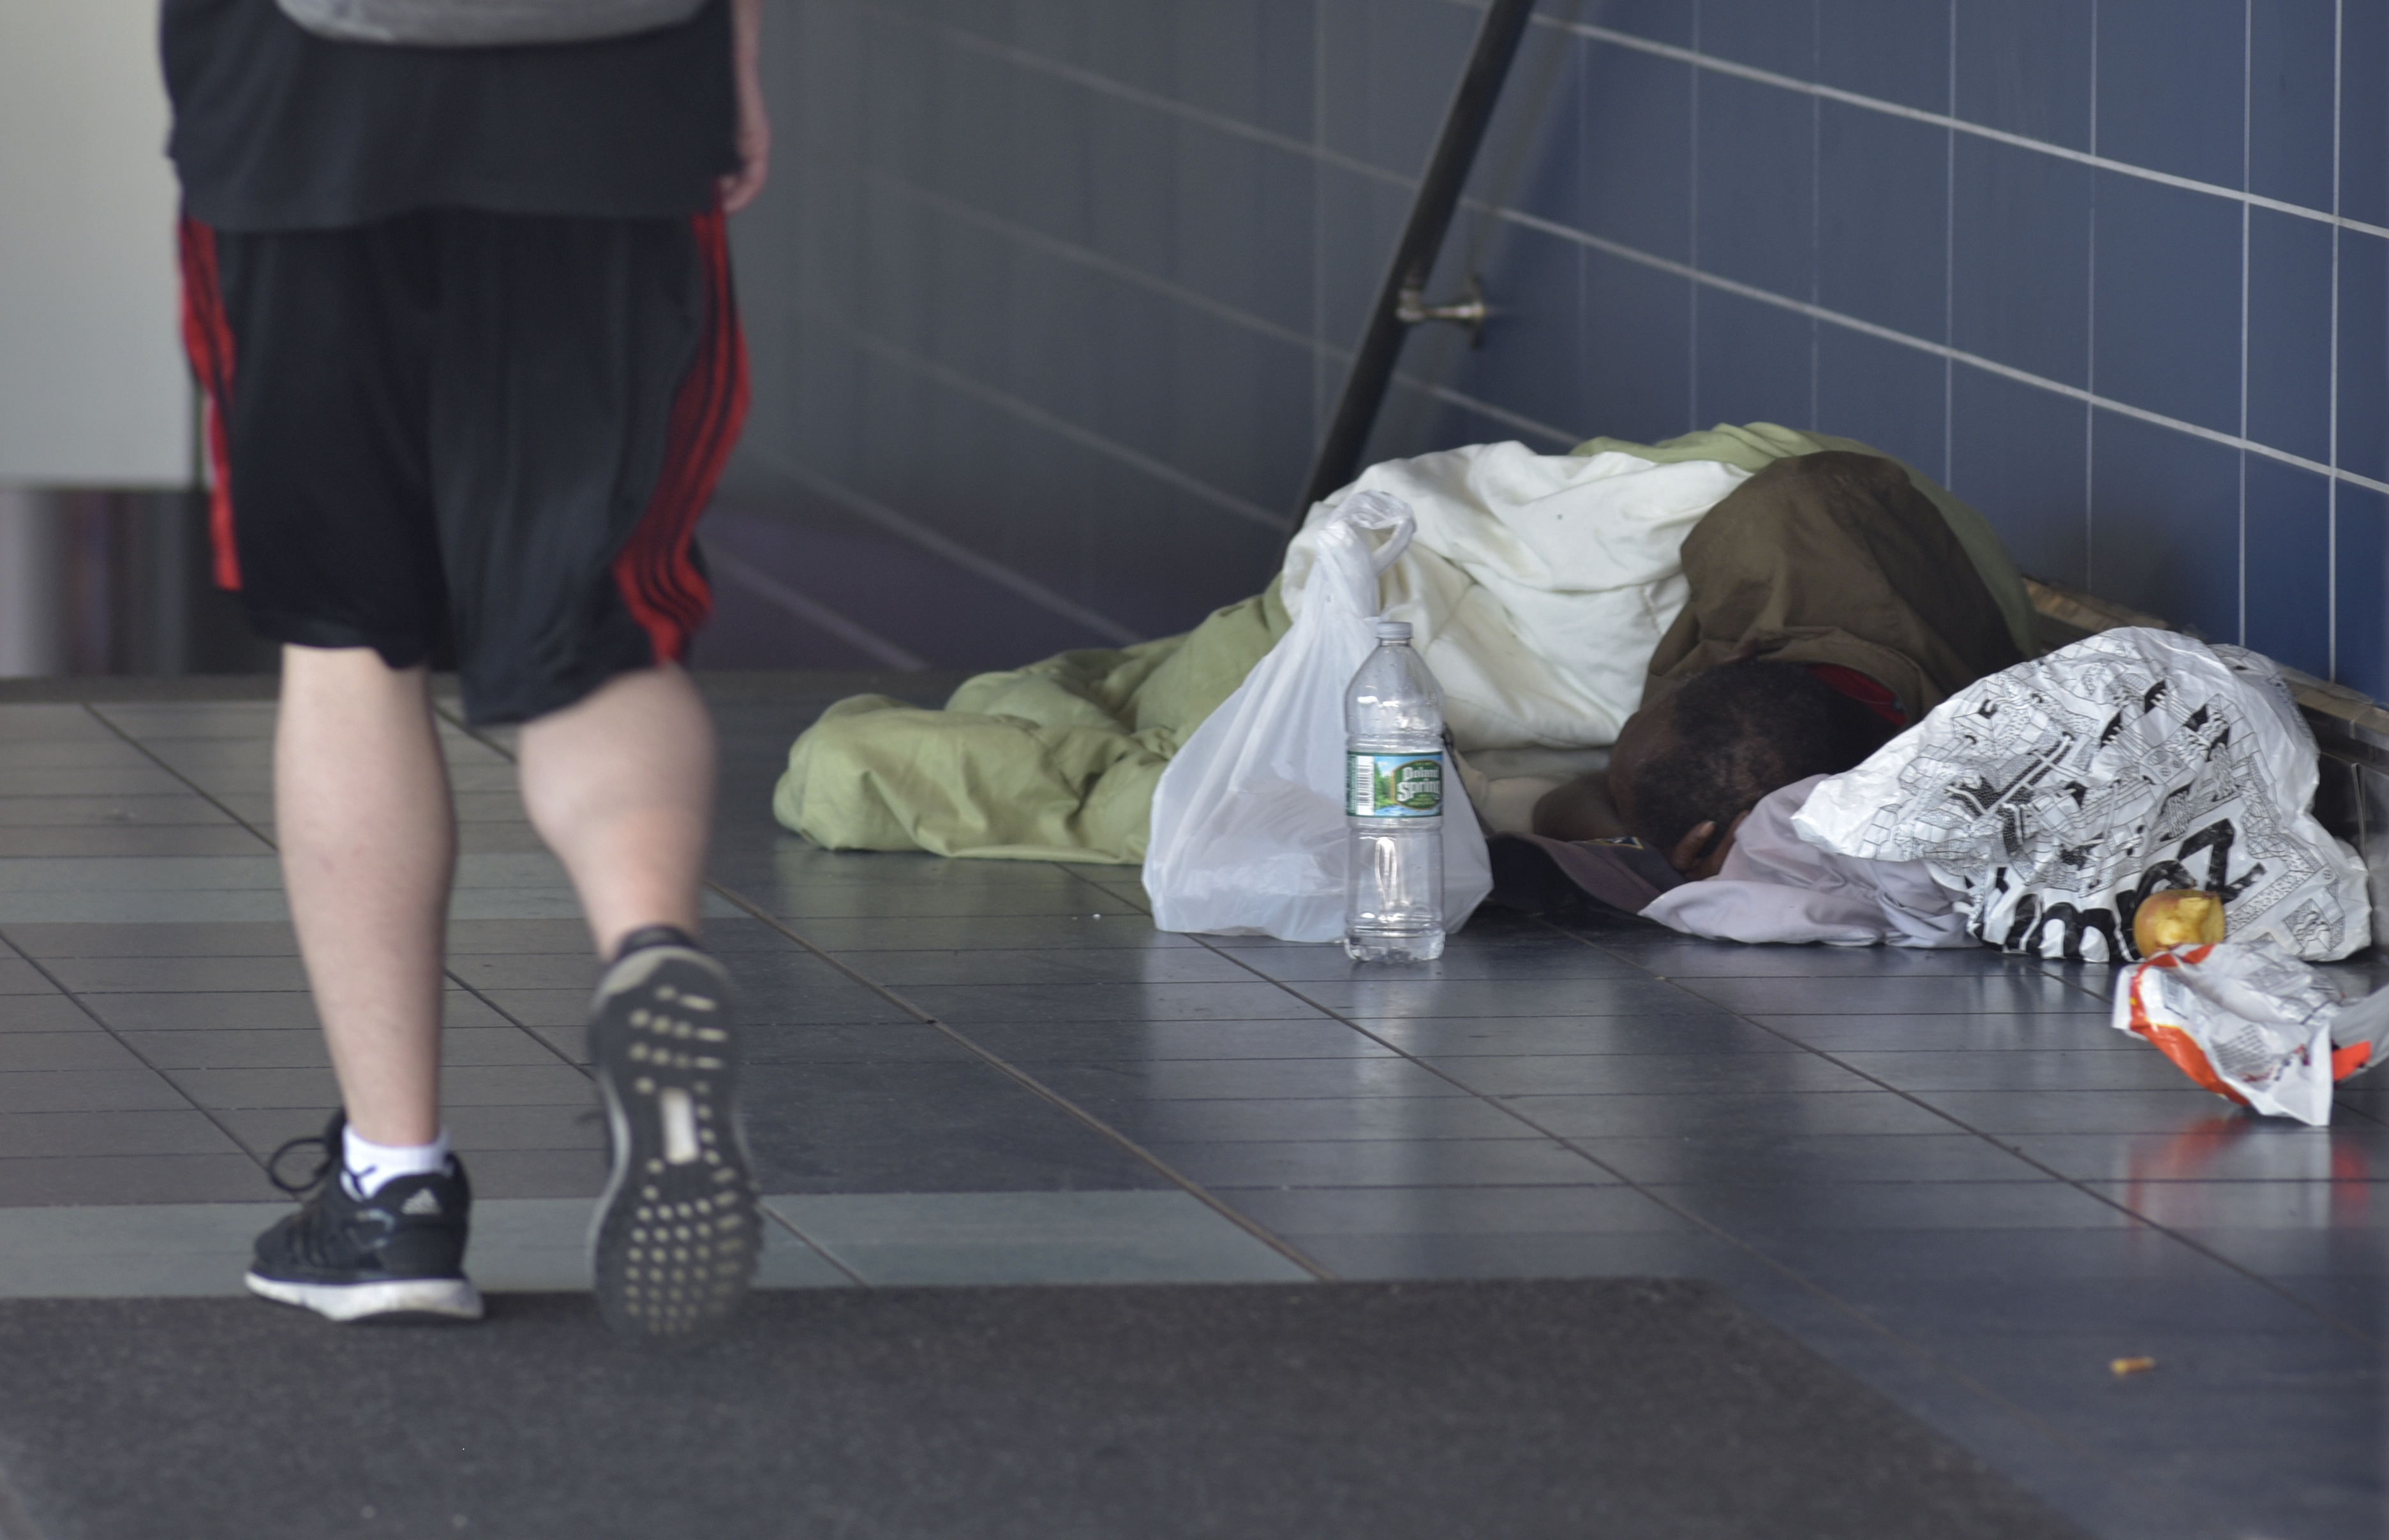 Island to get homeless shelters on North and South shores